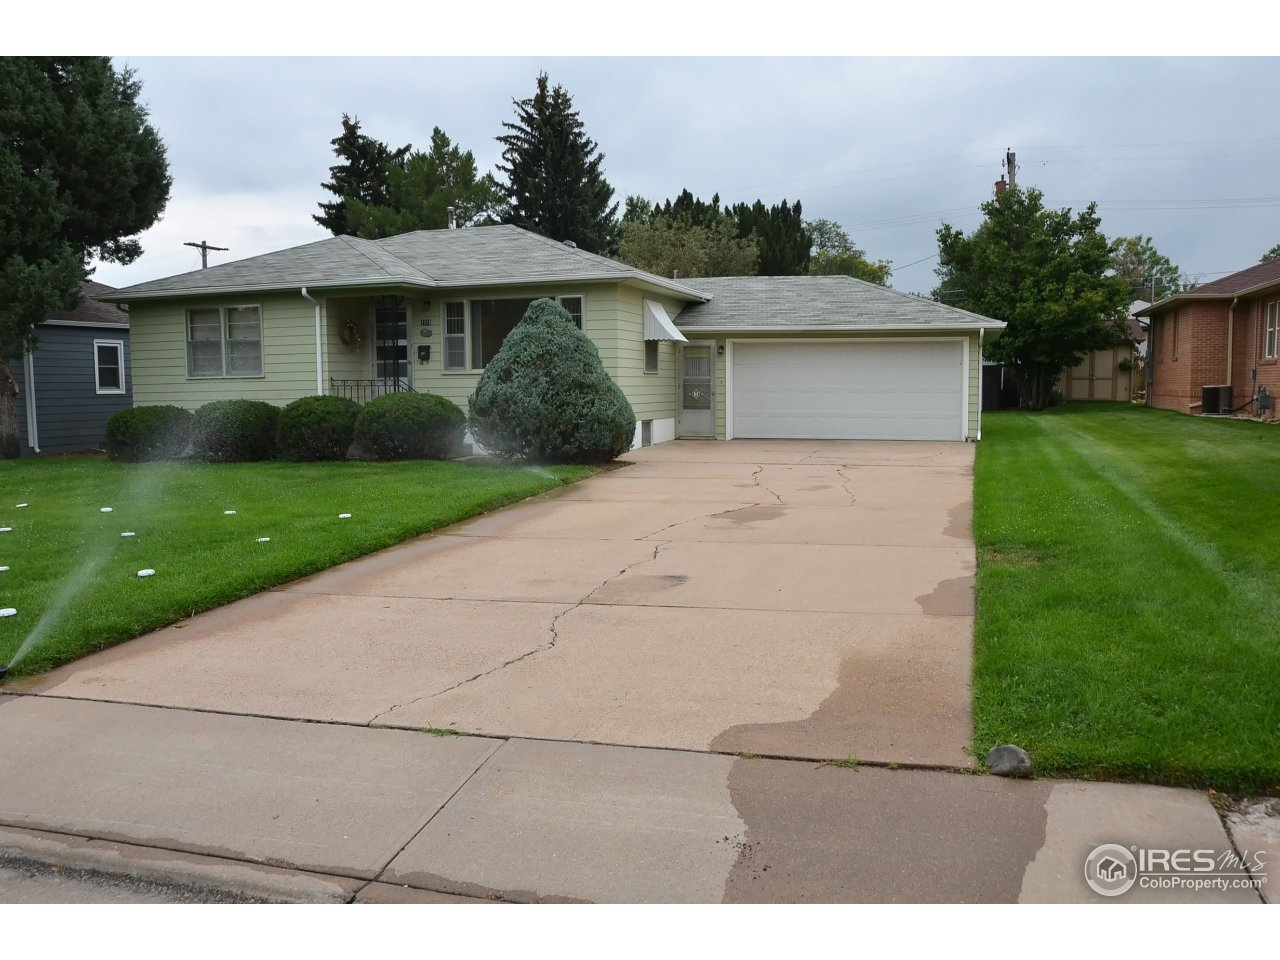 1712 13th St, Greeley, CO 80631